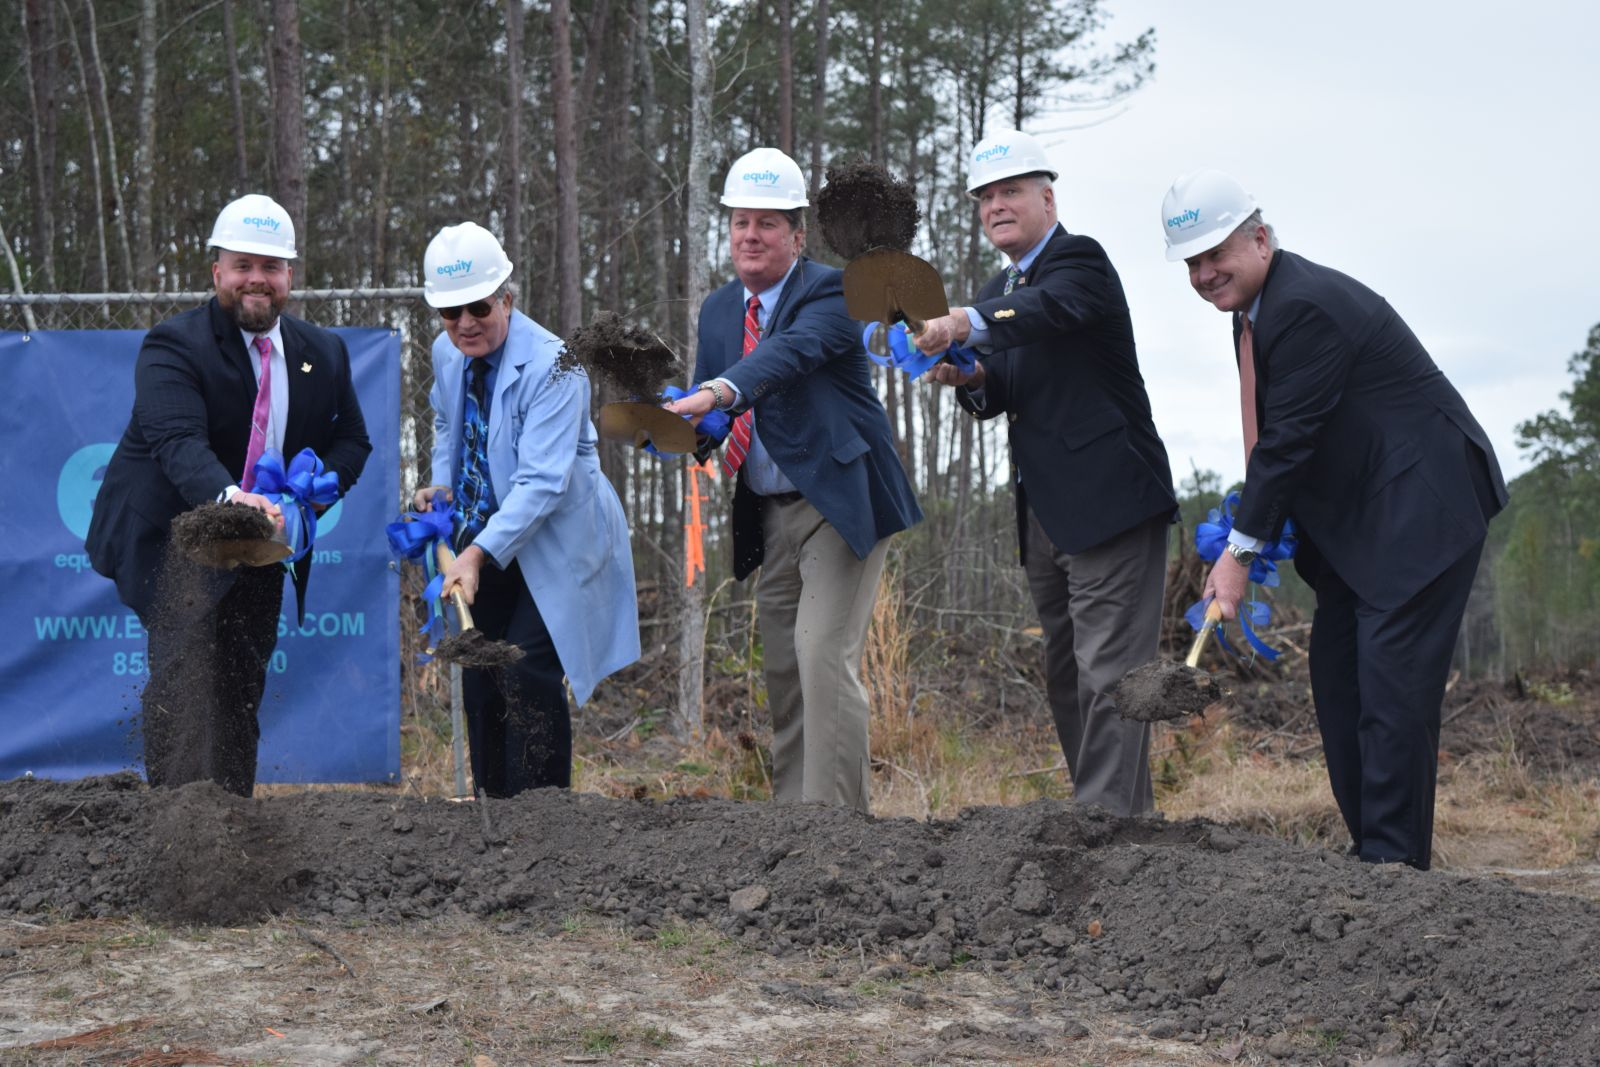 Ground was broken Wednesday for a Palmetto Primary Care Physicians medical office building in the Nexton community in Summerville. Palmetto Primary Care Physicians CEO Terry Cunningham (from left), President Dr. Brantley Arnau, Equity Partners CEO Steve Wathen, Summerville Mayor Wiley Johnson and WestRock Land and Development President Ken Seeger took park in the ceremony. (Photo/Ashley Heffernan)